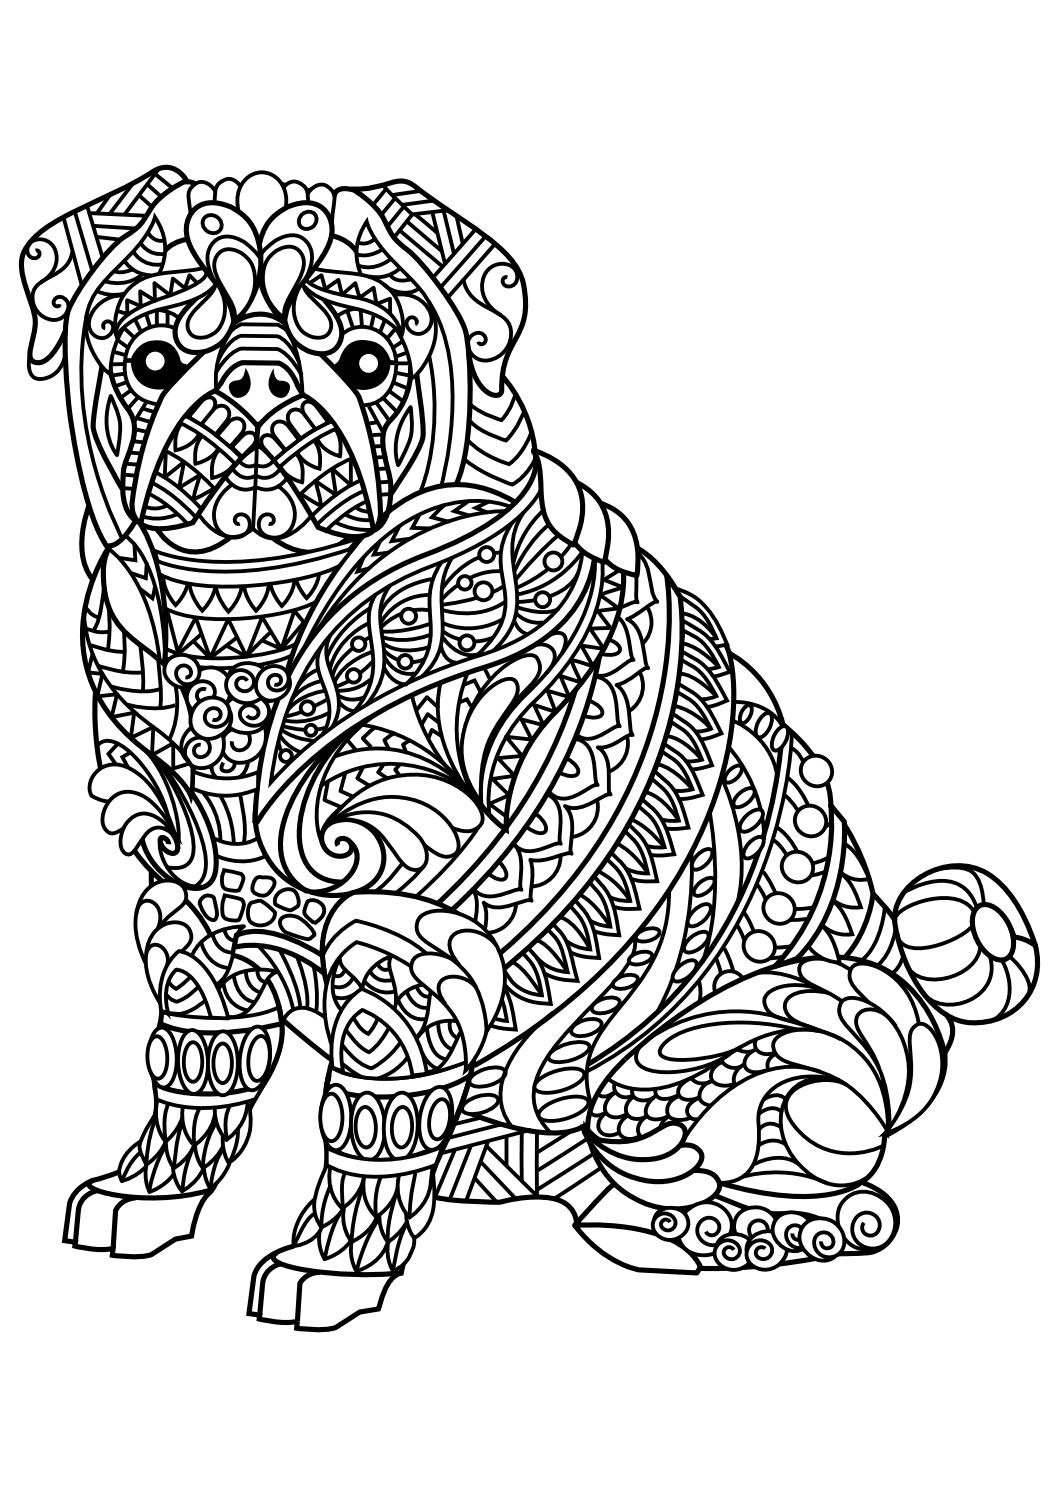 1059x1497 Best Of Funny Animals Coloring Page Cute Dog Coloring Pages